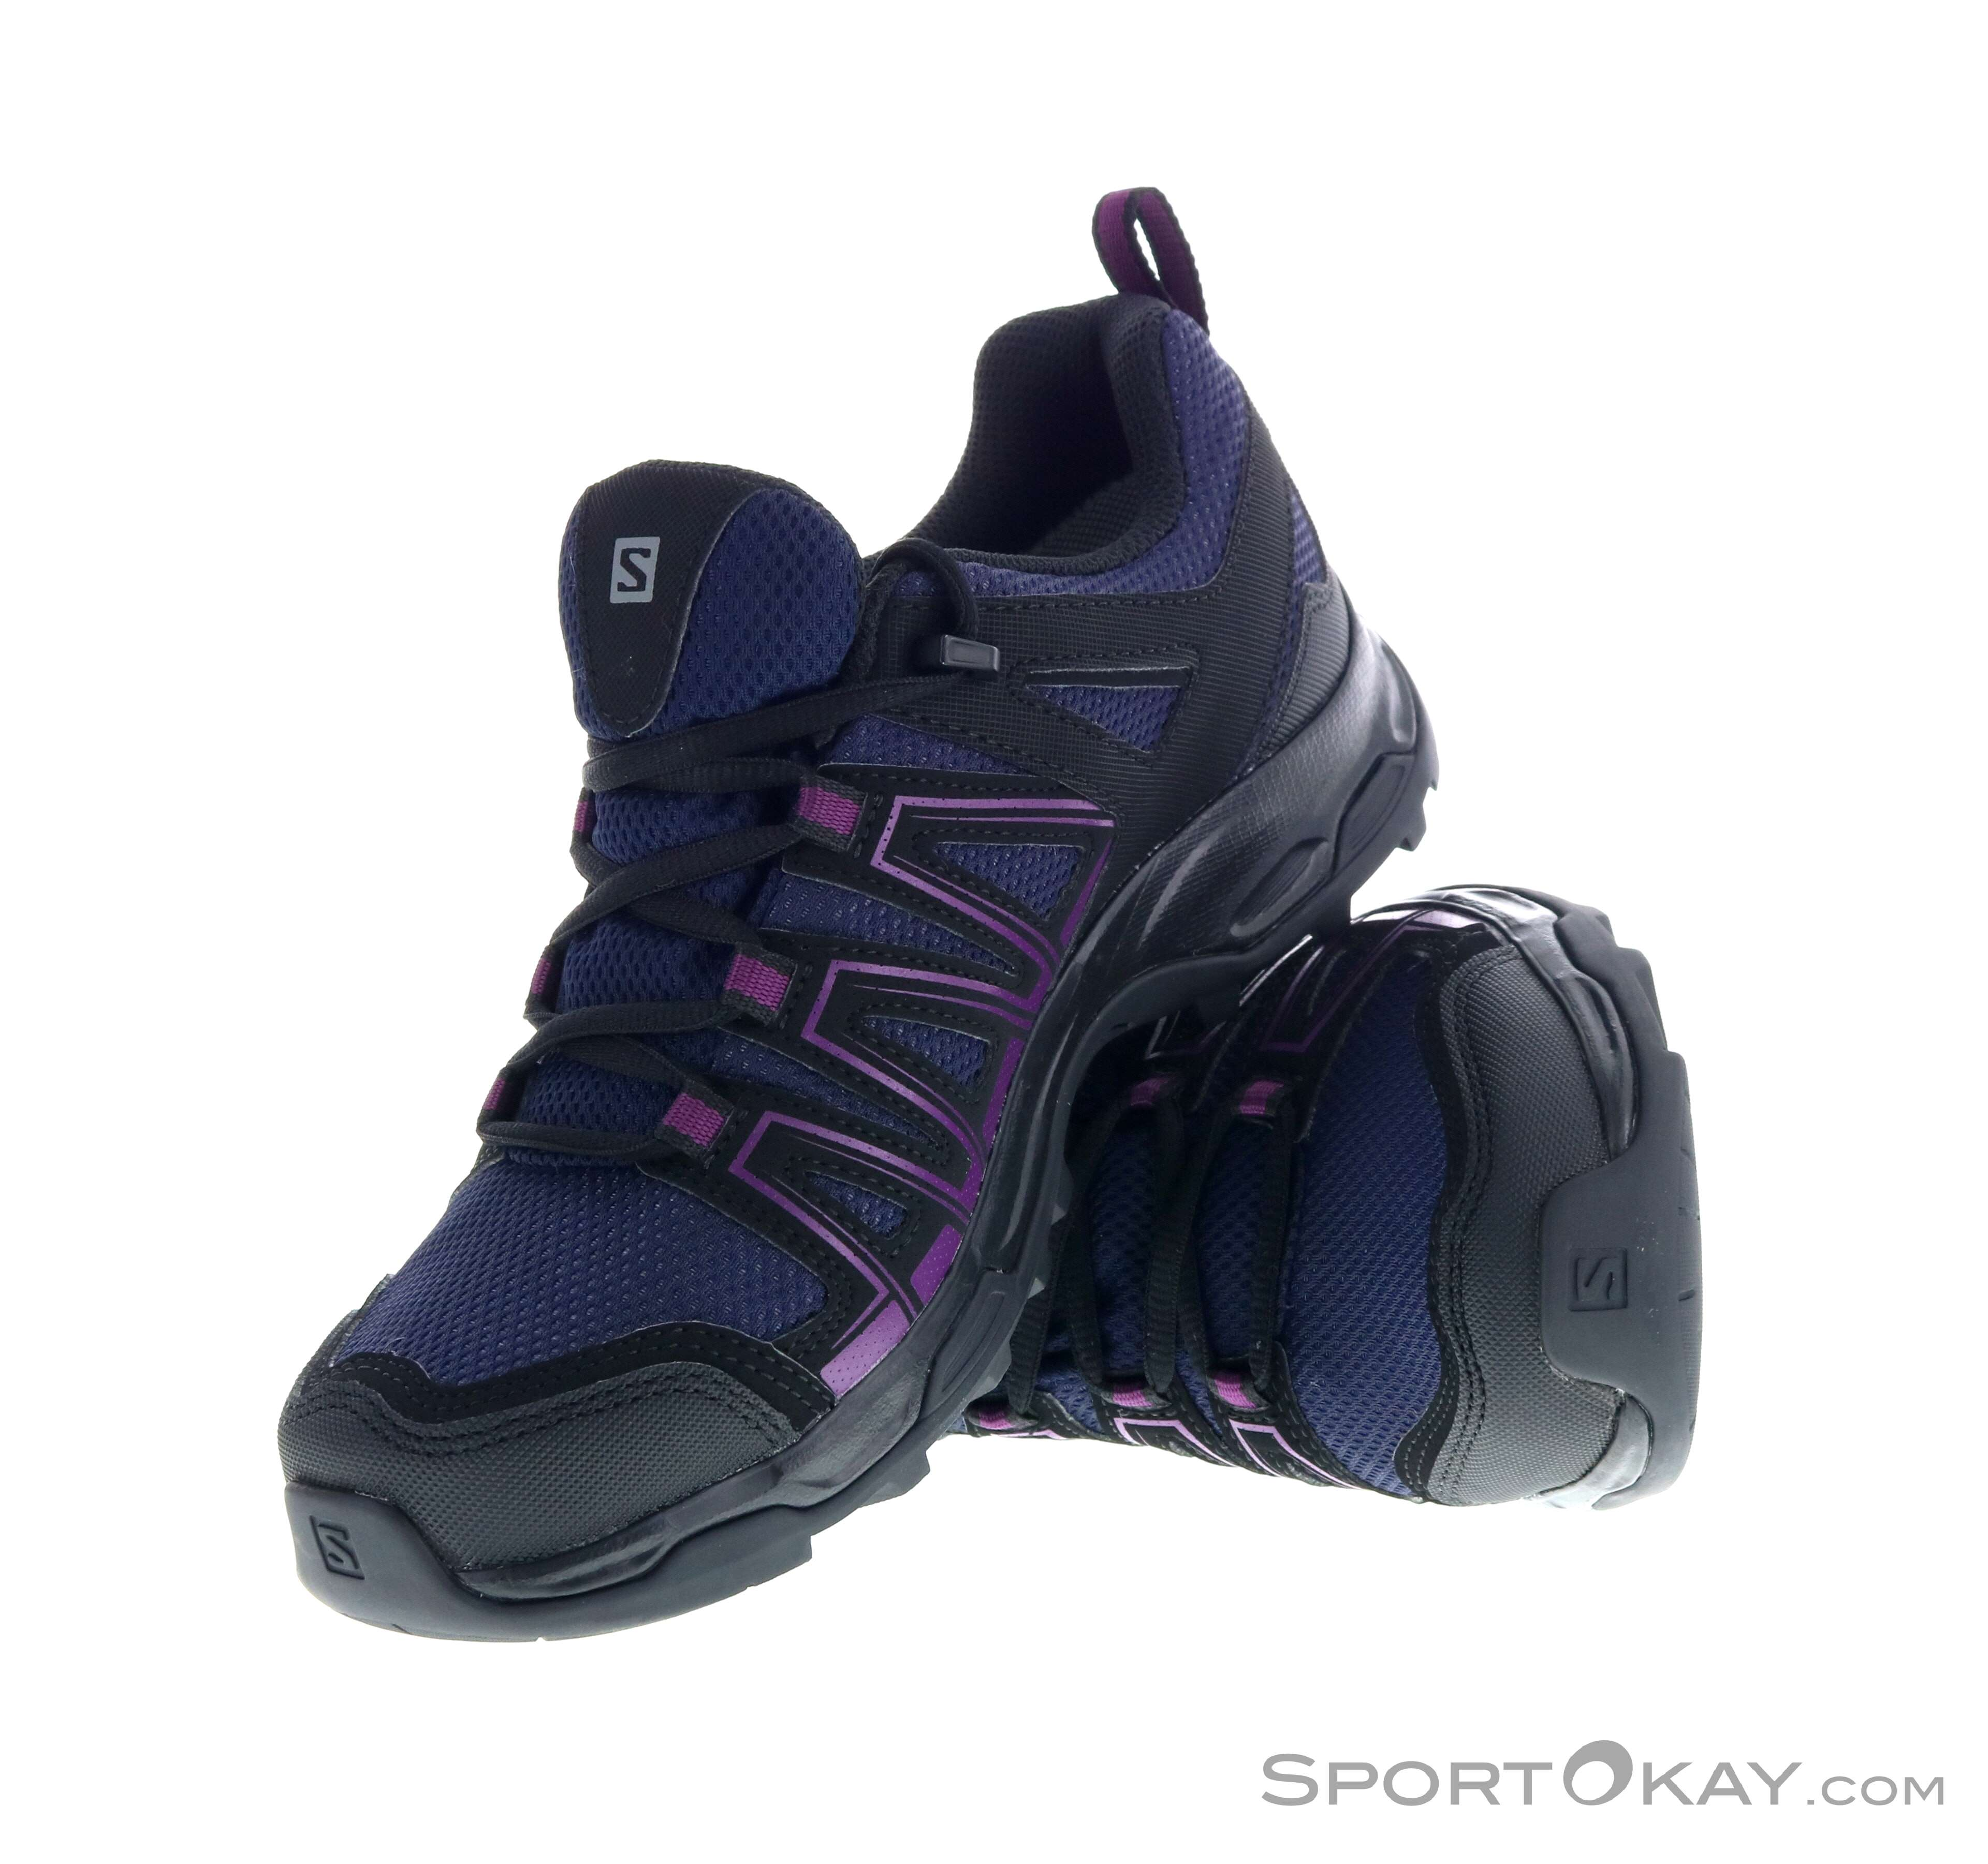 Salomon X Ultra 3 GTX Womens Trekking Shoes Gore-Tex ...